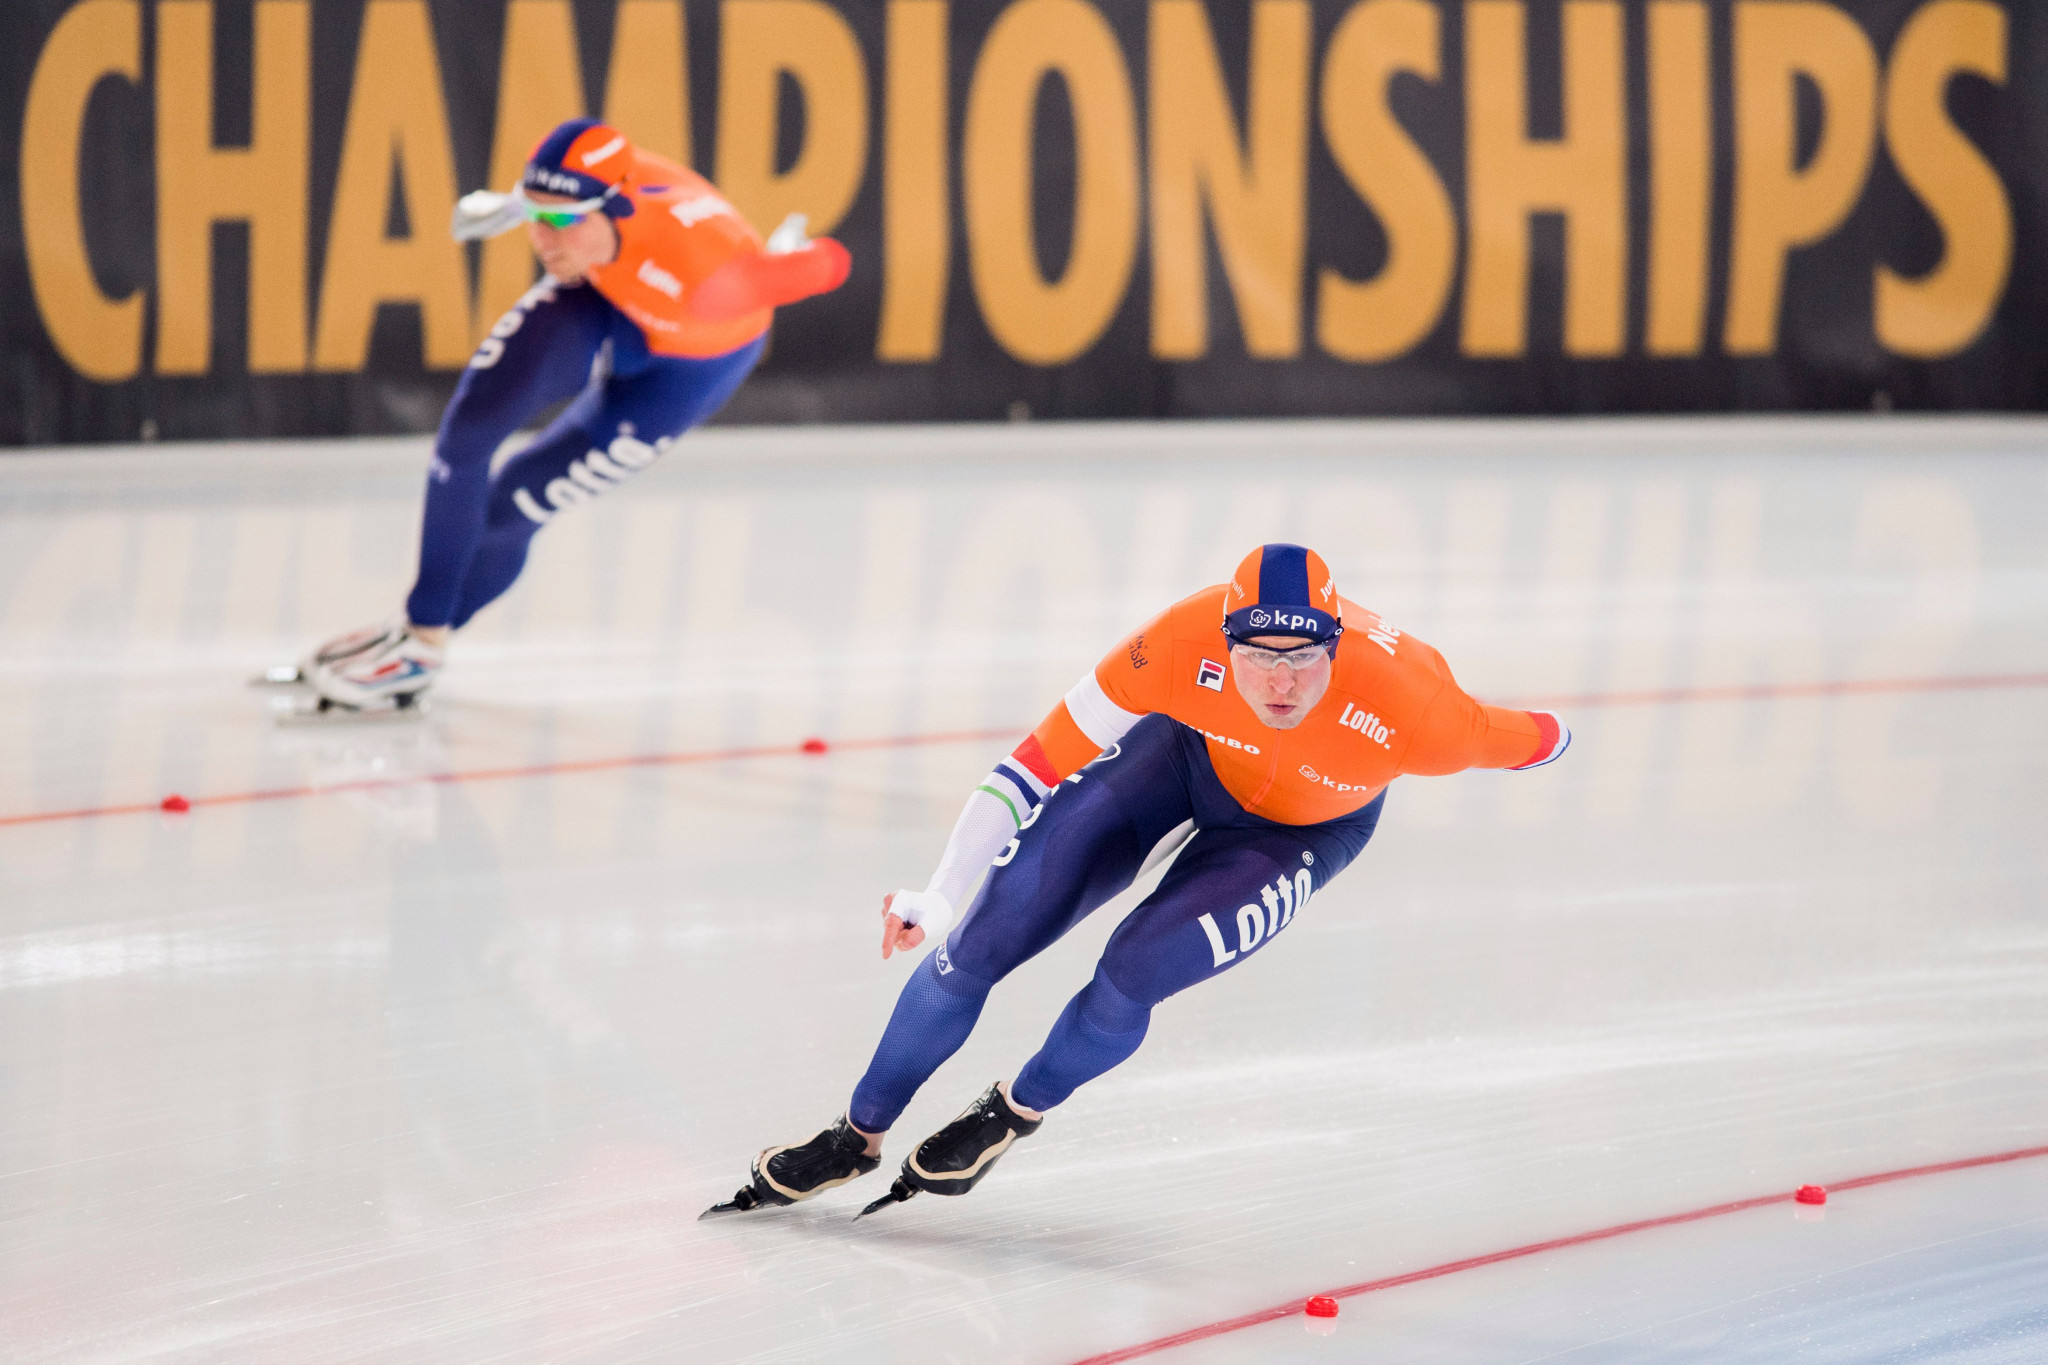 Hamar will again host the World Speed Skating Championships ©Getty Images